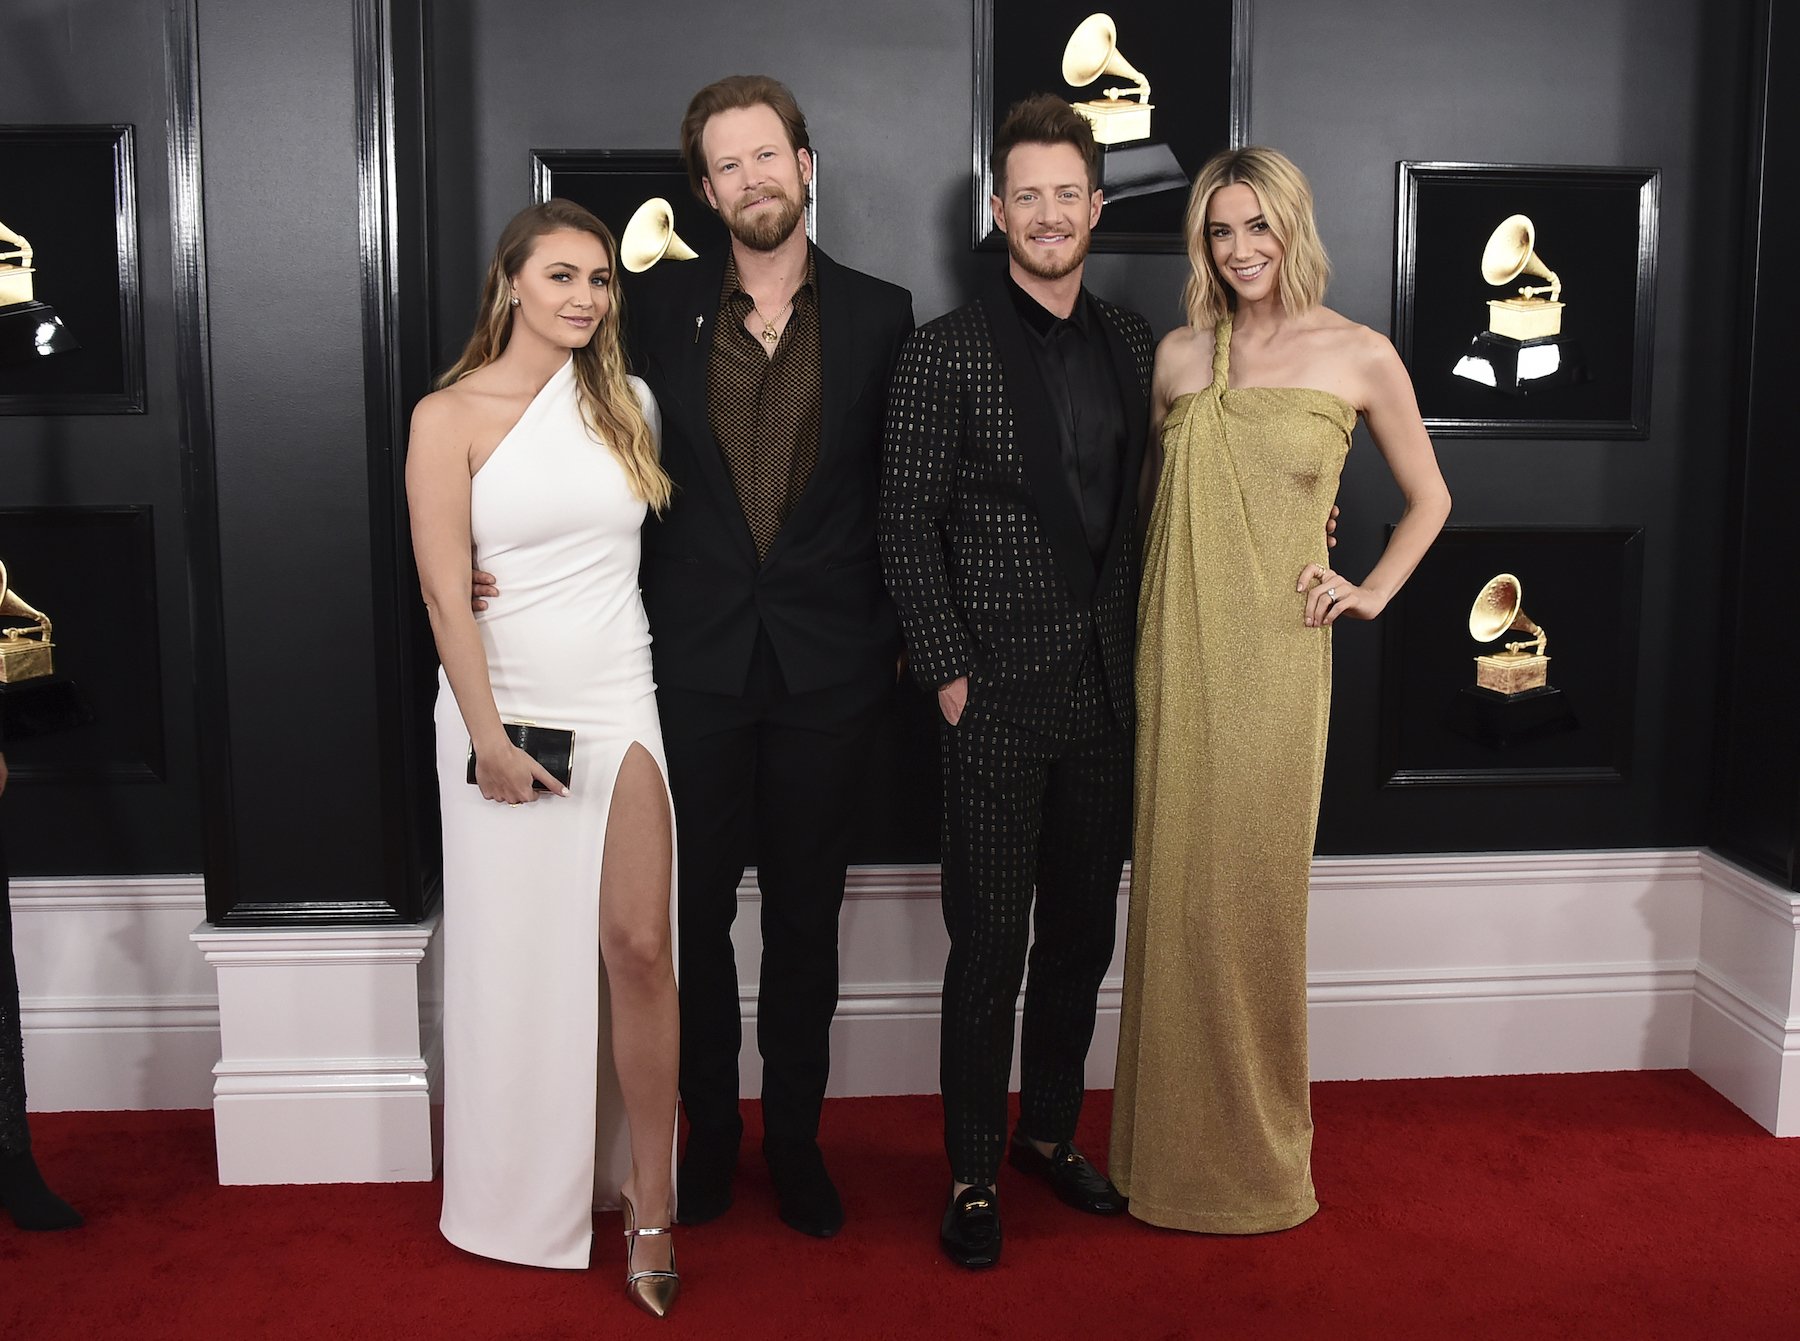 <div class='meta'><div class='origin-logo' data-origin='AP'></div><span class='caption-text' data-credit='Jordan Strauss/Invision/AP'>Brittney Marie Cole, from left, Brian Kelley, Tyler Hubbard, and Hayley Stommel arrive at the 61st annual Grammy Awards at the Staples Center on Sunday, Feb. 10, 2019.</span></div>